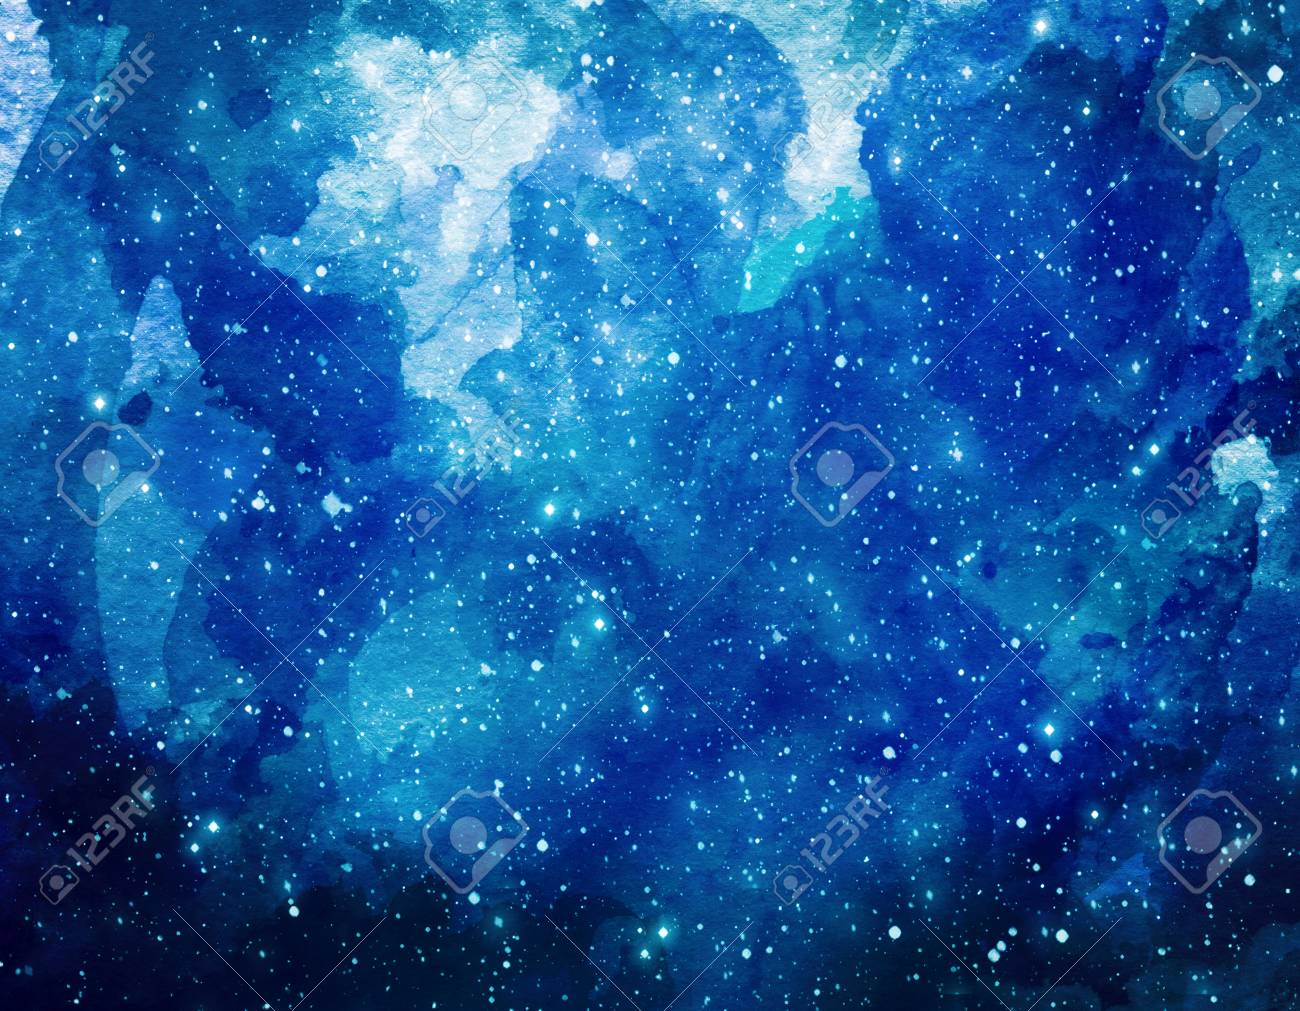 space watercolor background abstract galaxy painting watercolor